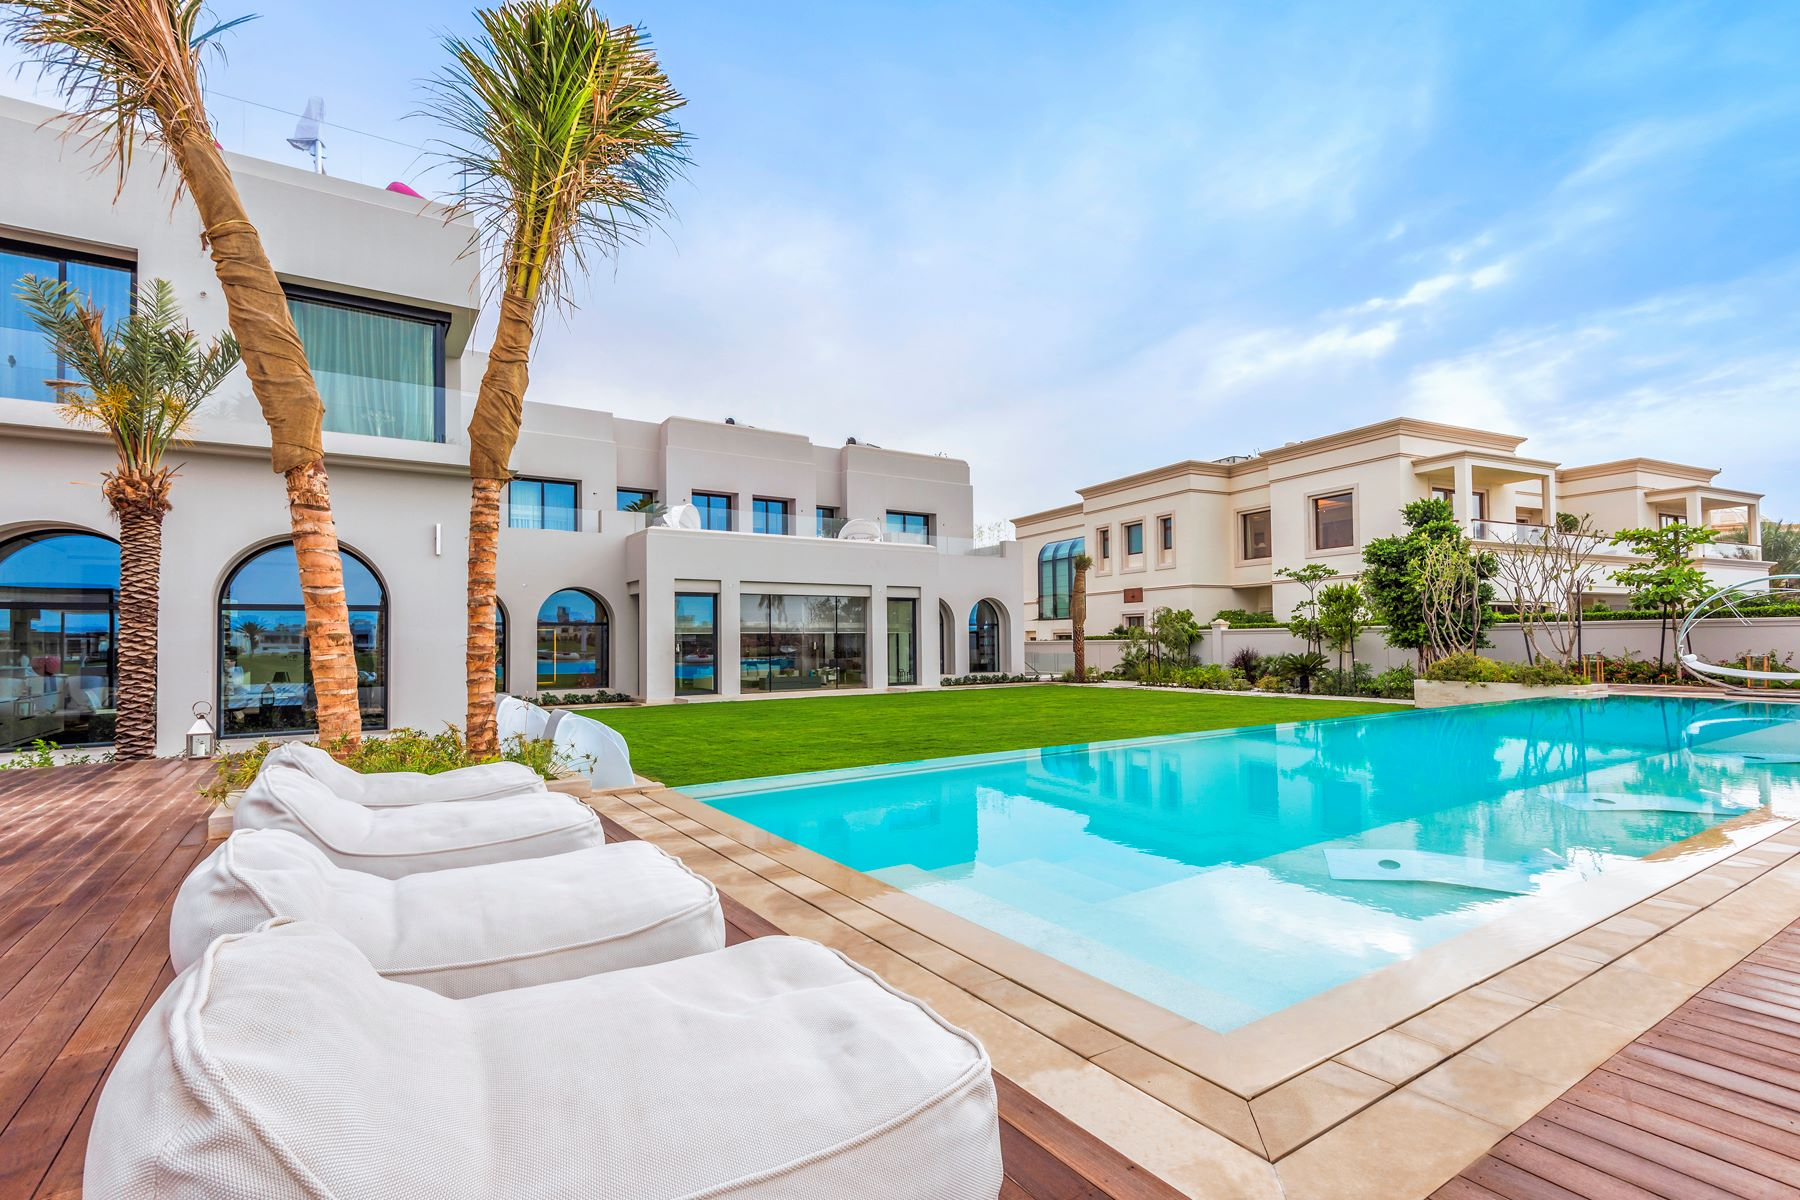 Multi-Family Home for Sale at Golf Course View - Emirates Hills Emirates Hills, Dubai, United Arab Emirates